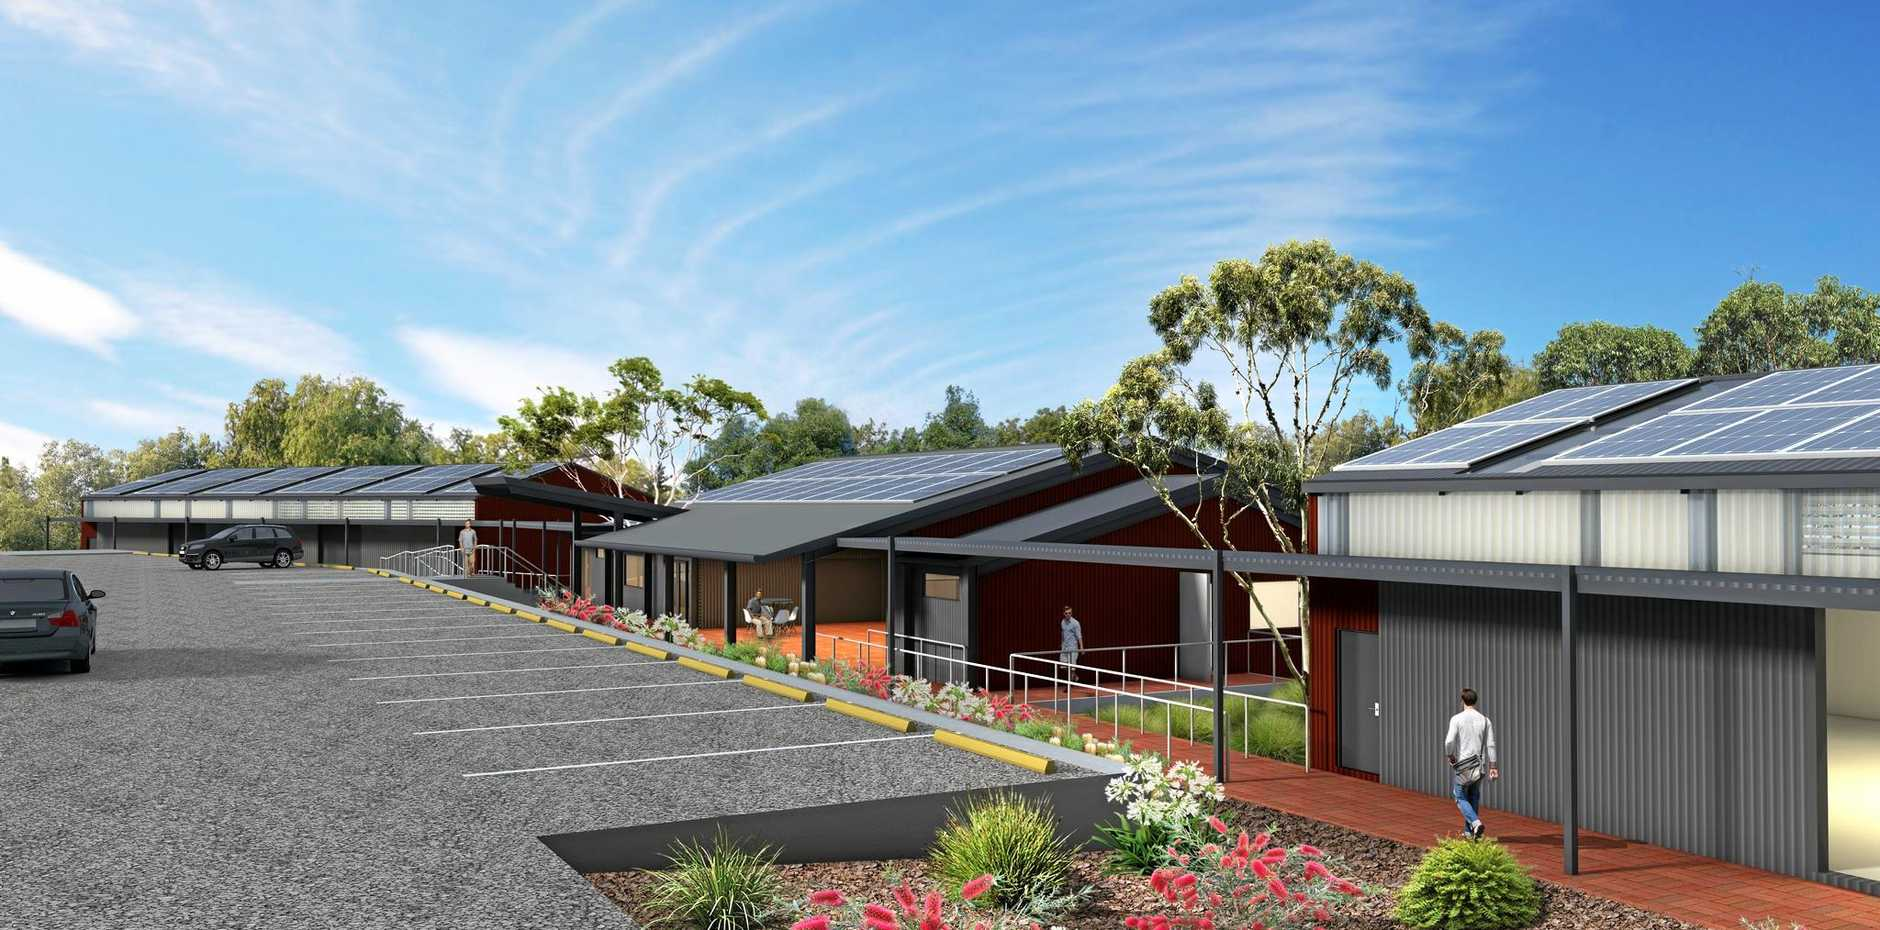 ARTIST'S IMPRESSION: A 3D render of the proposed new Men's Shed at Buderim.